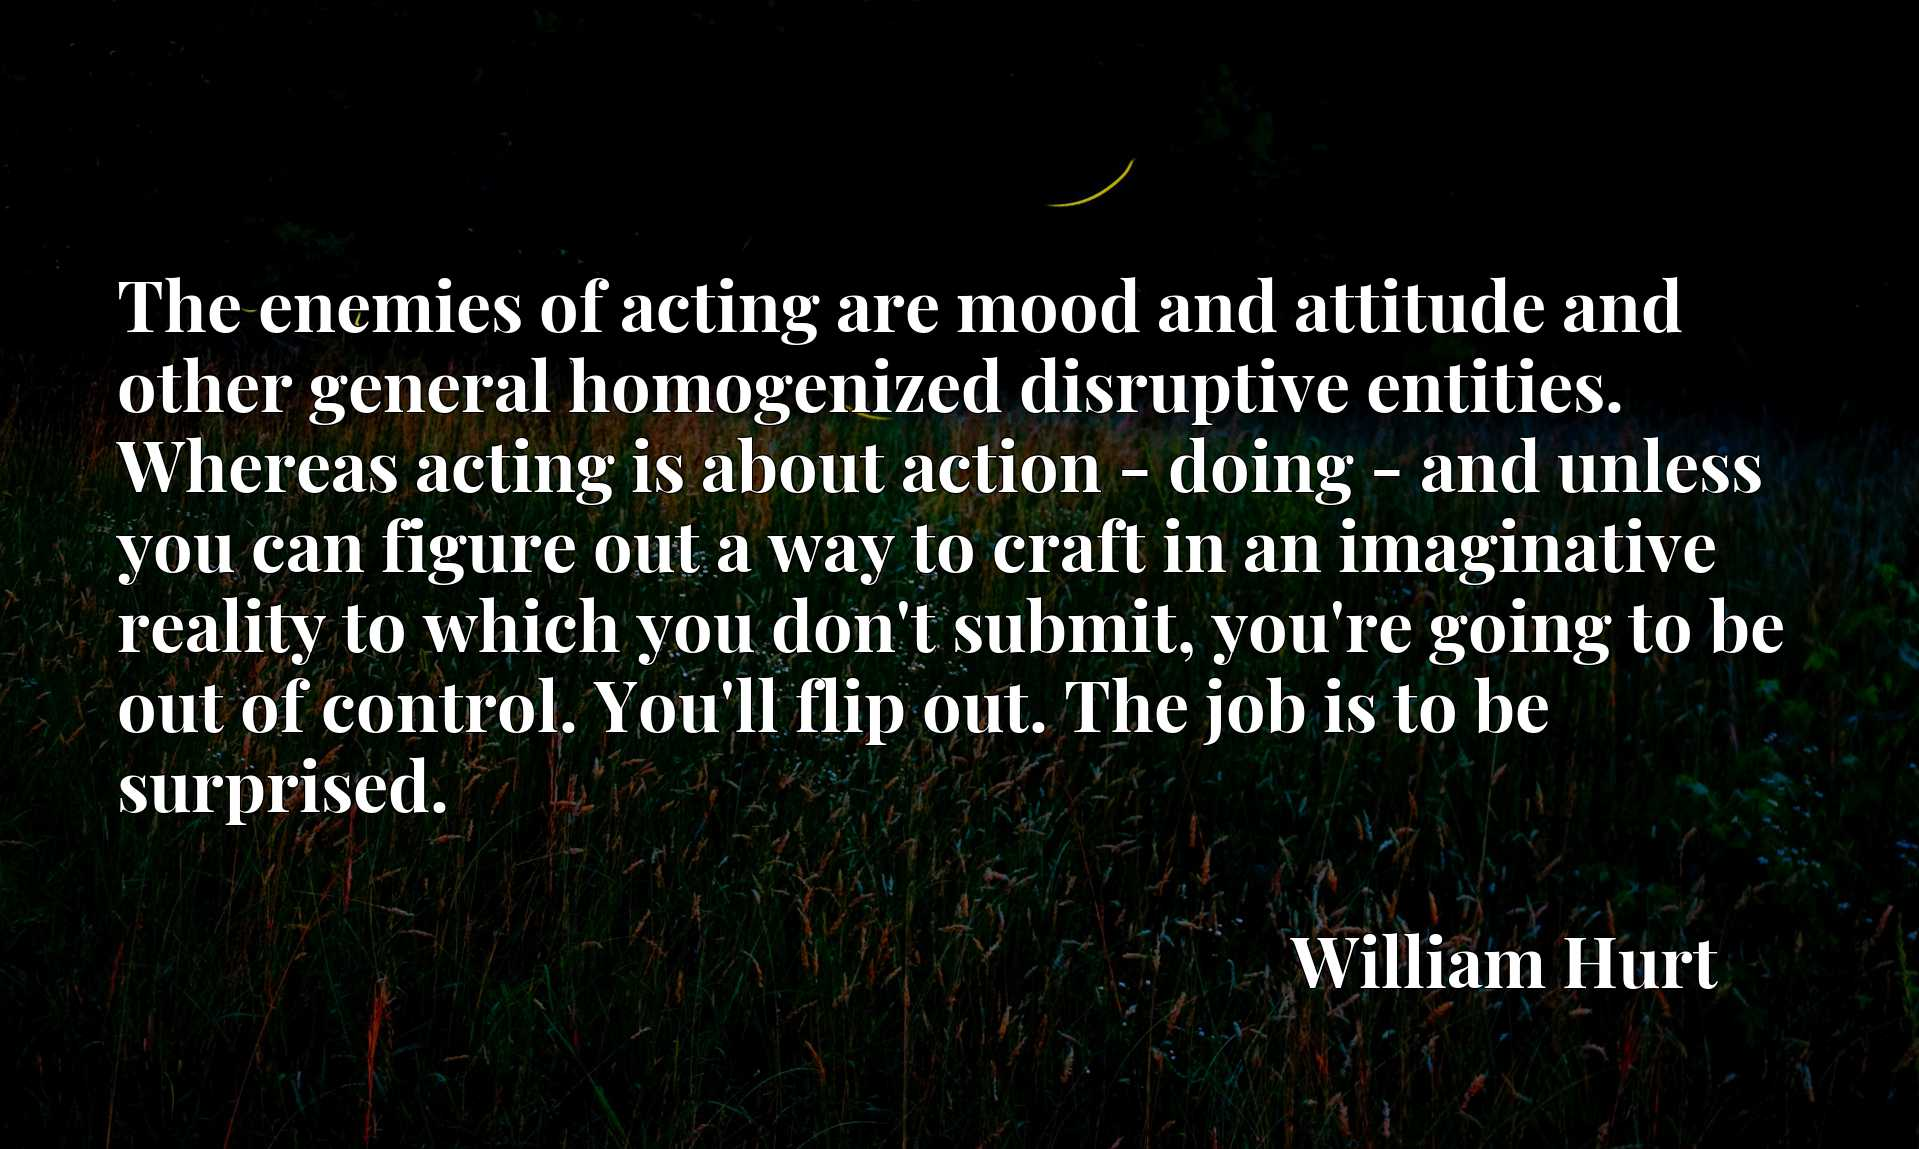 The enemies of acting are mood and attitude and other general homogenized disruptive entities. Whereas acting is about action - doing - and unless you can figure out a way to craft in an imaginative reality to which you don't submit, you're going to be out of control. You'll flip out. The job is to be surprised.